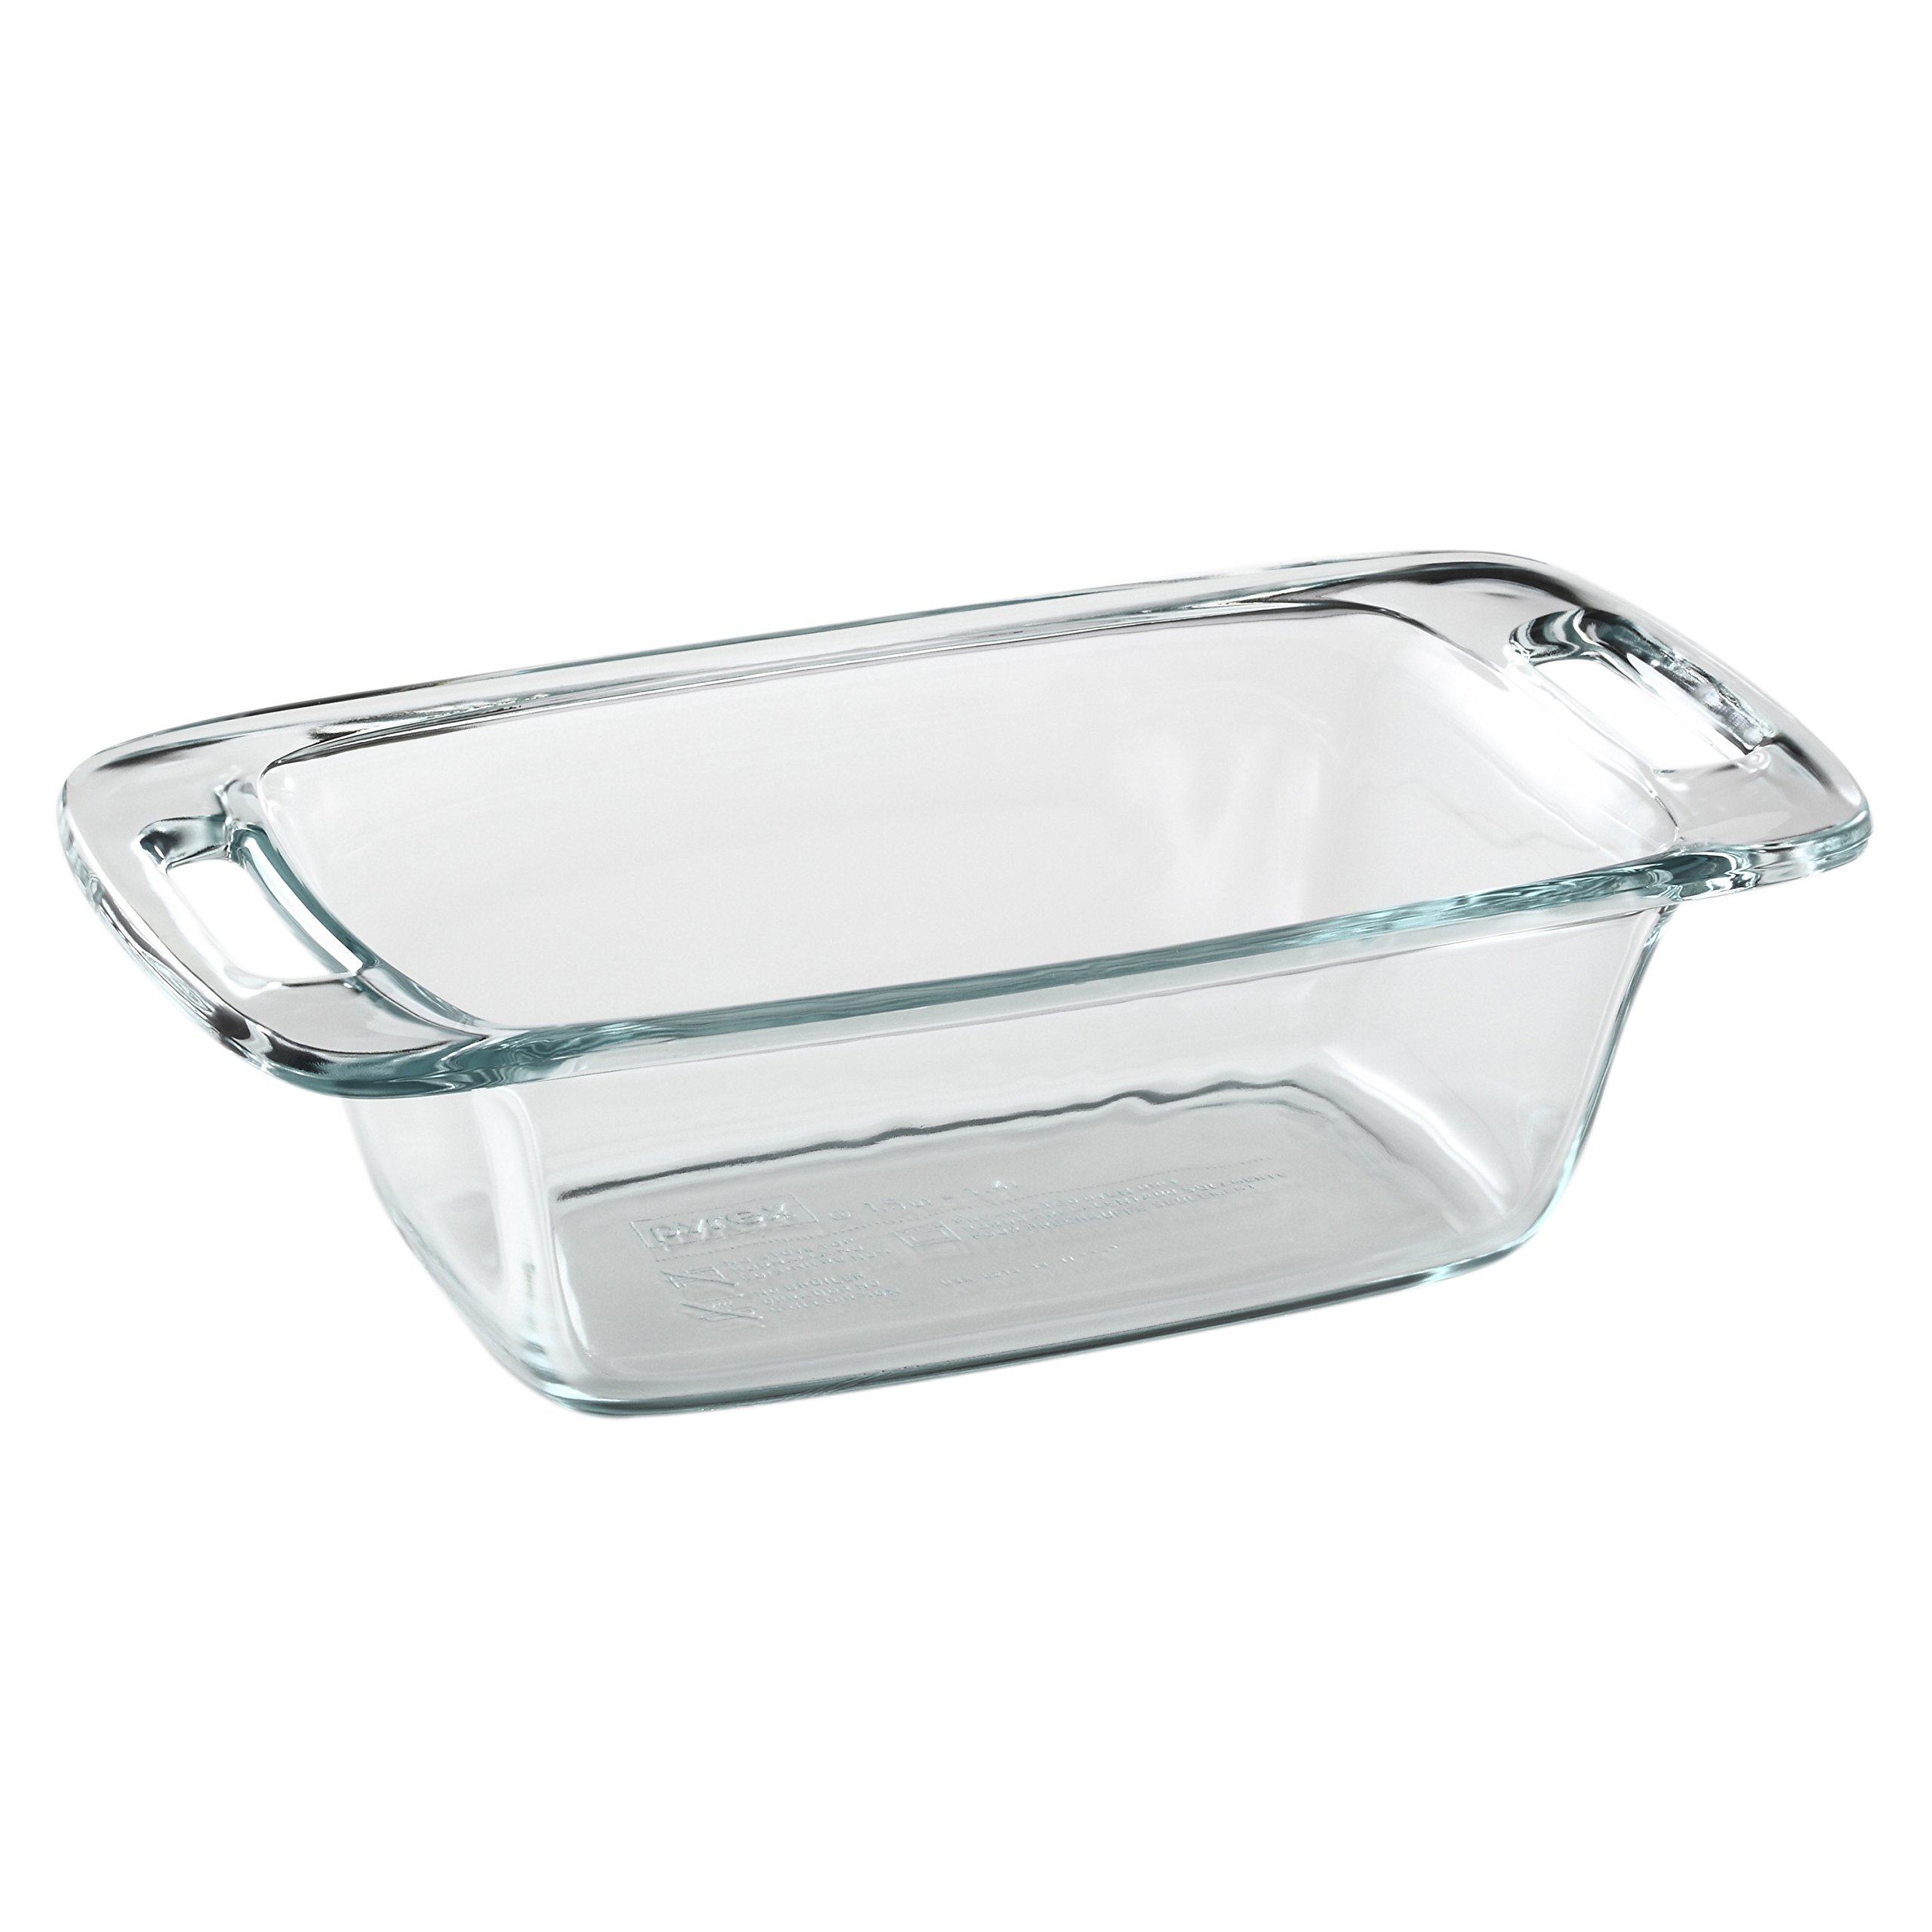 Pyrex Easy Grab 5-Piece Glass Bakeware Set